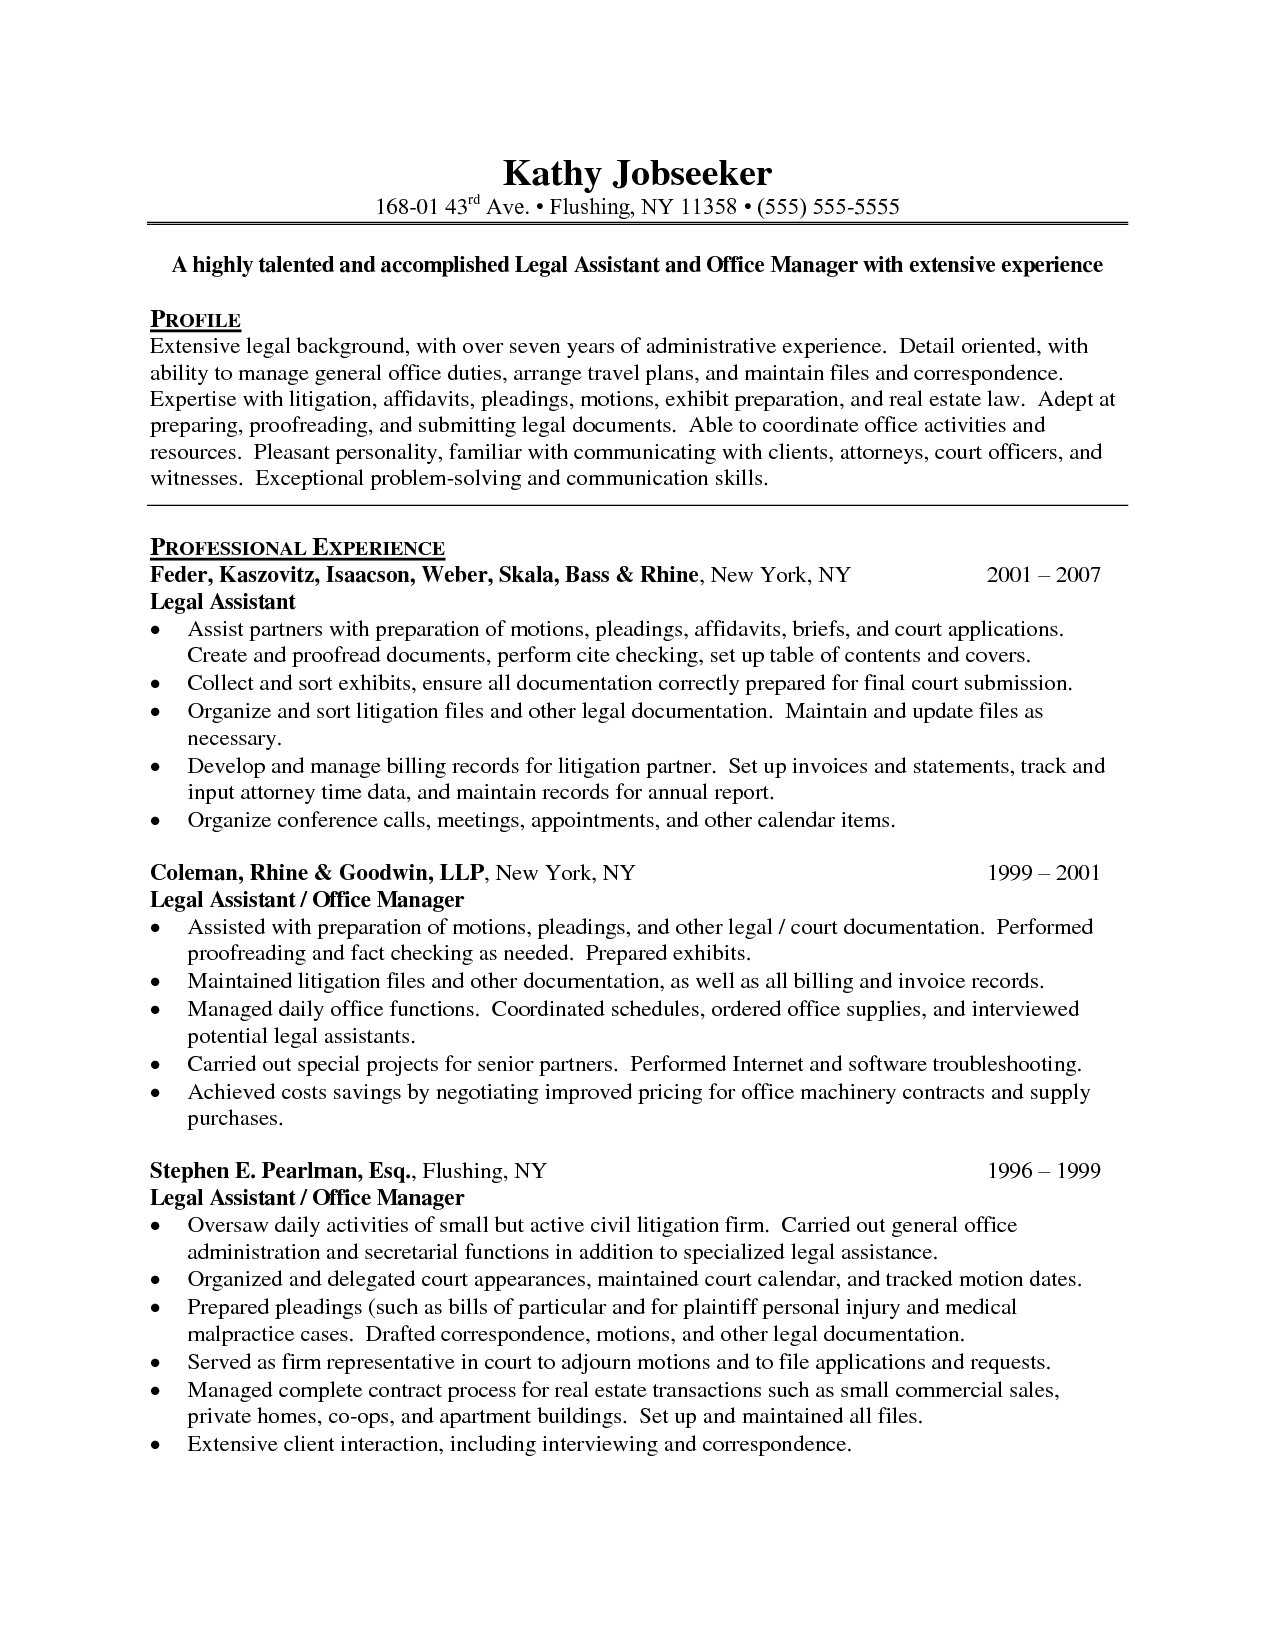 Social Work Resume Objective Health Law Attorney Cover Letter Transplant Social Worker Sample